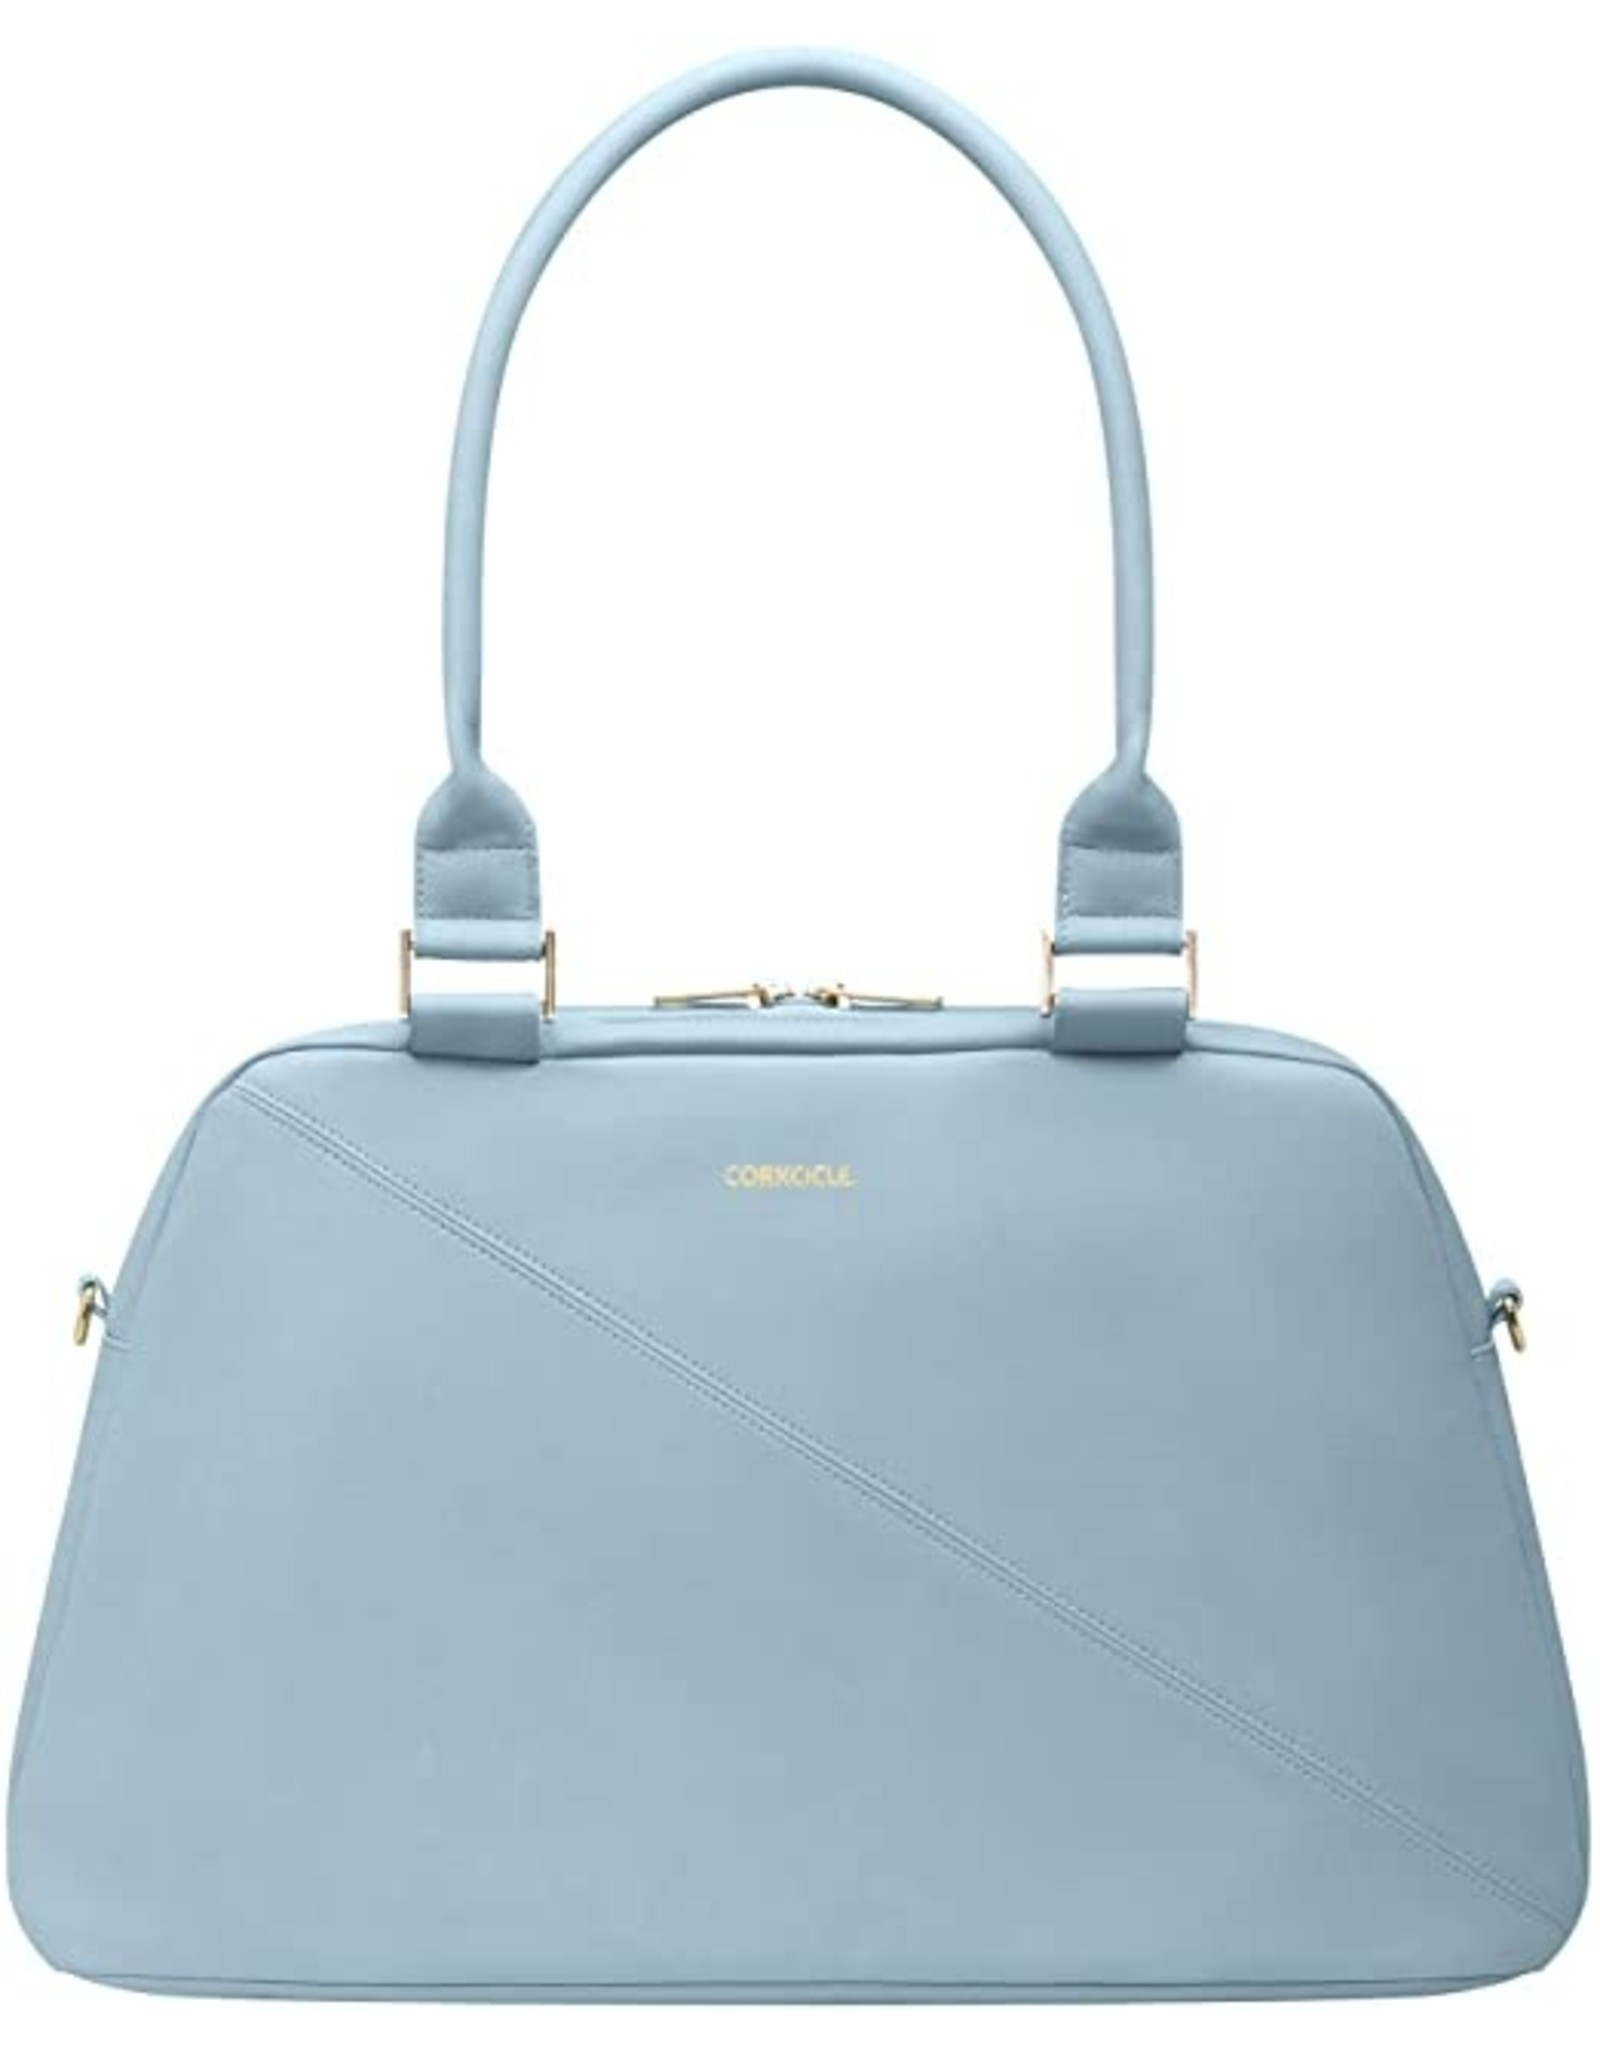 Corkcicle CRC Lucy Bag - Seafoam